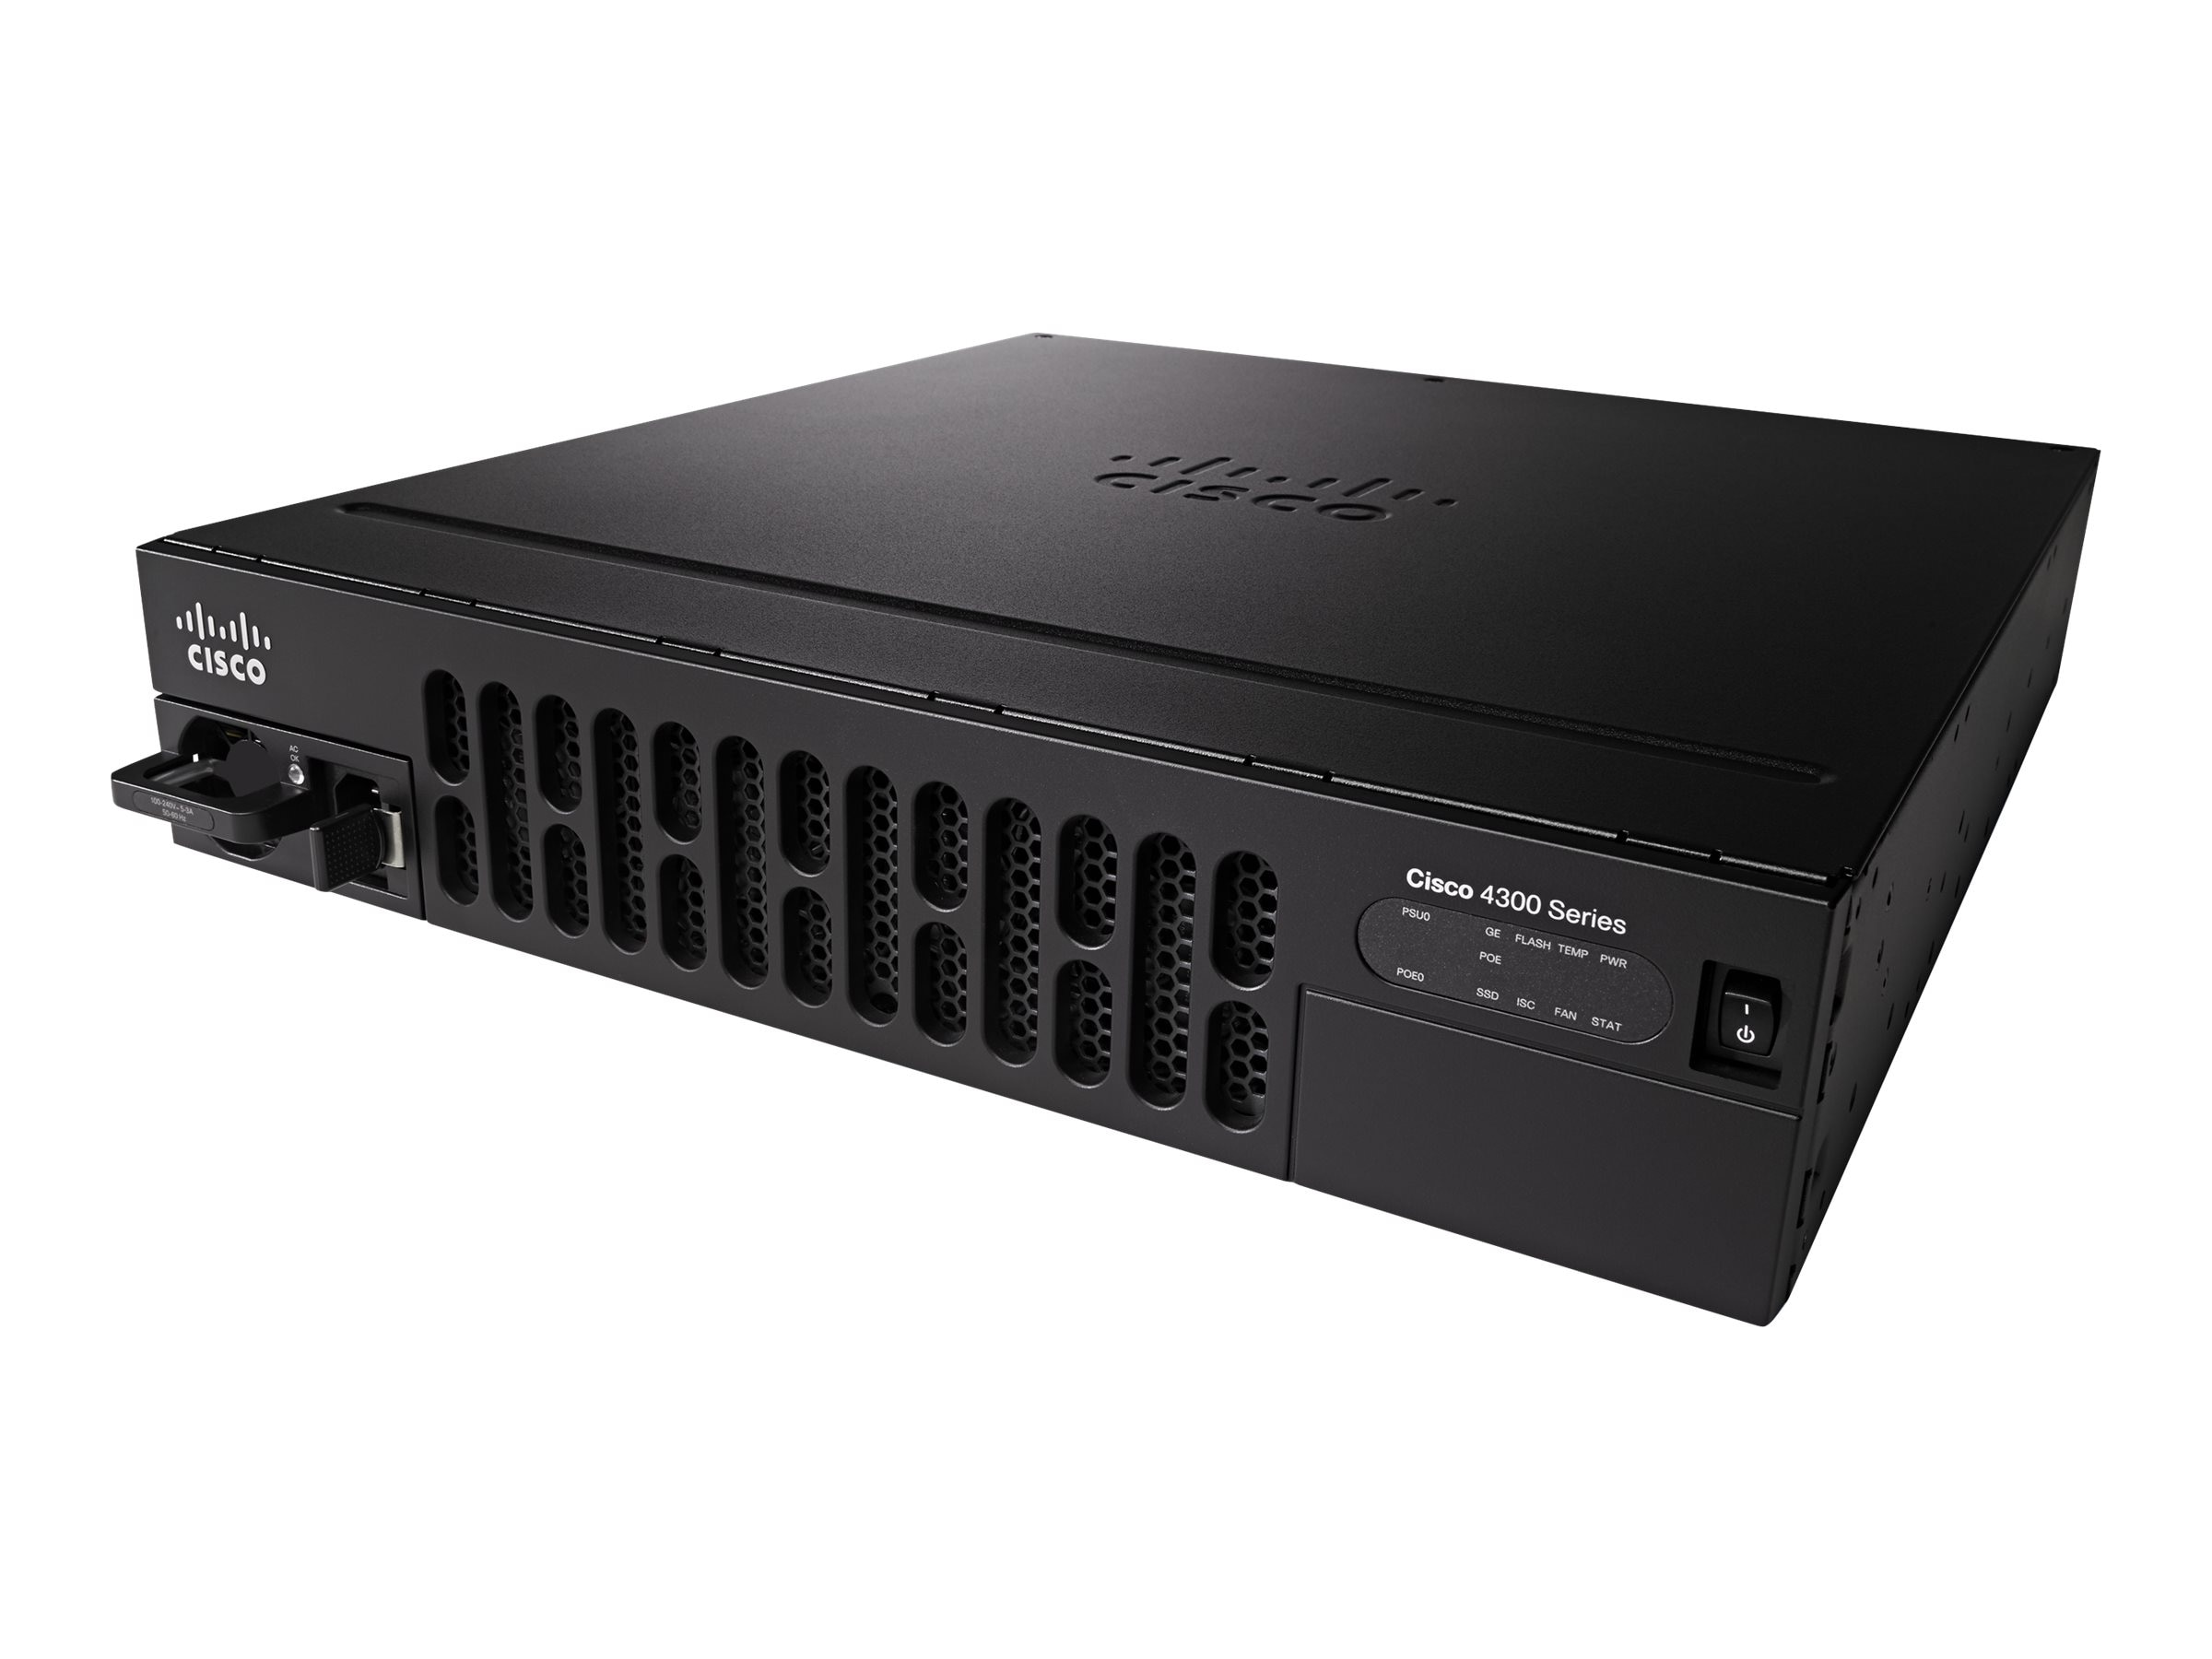 Cisco SR 4351 with 3 onboard GE, 3 NIM slots, 1 ISC slot, 2 SM slots, 4 GB Flash Memory default, 4 GB DRAM, ISR4351/K9